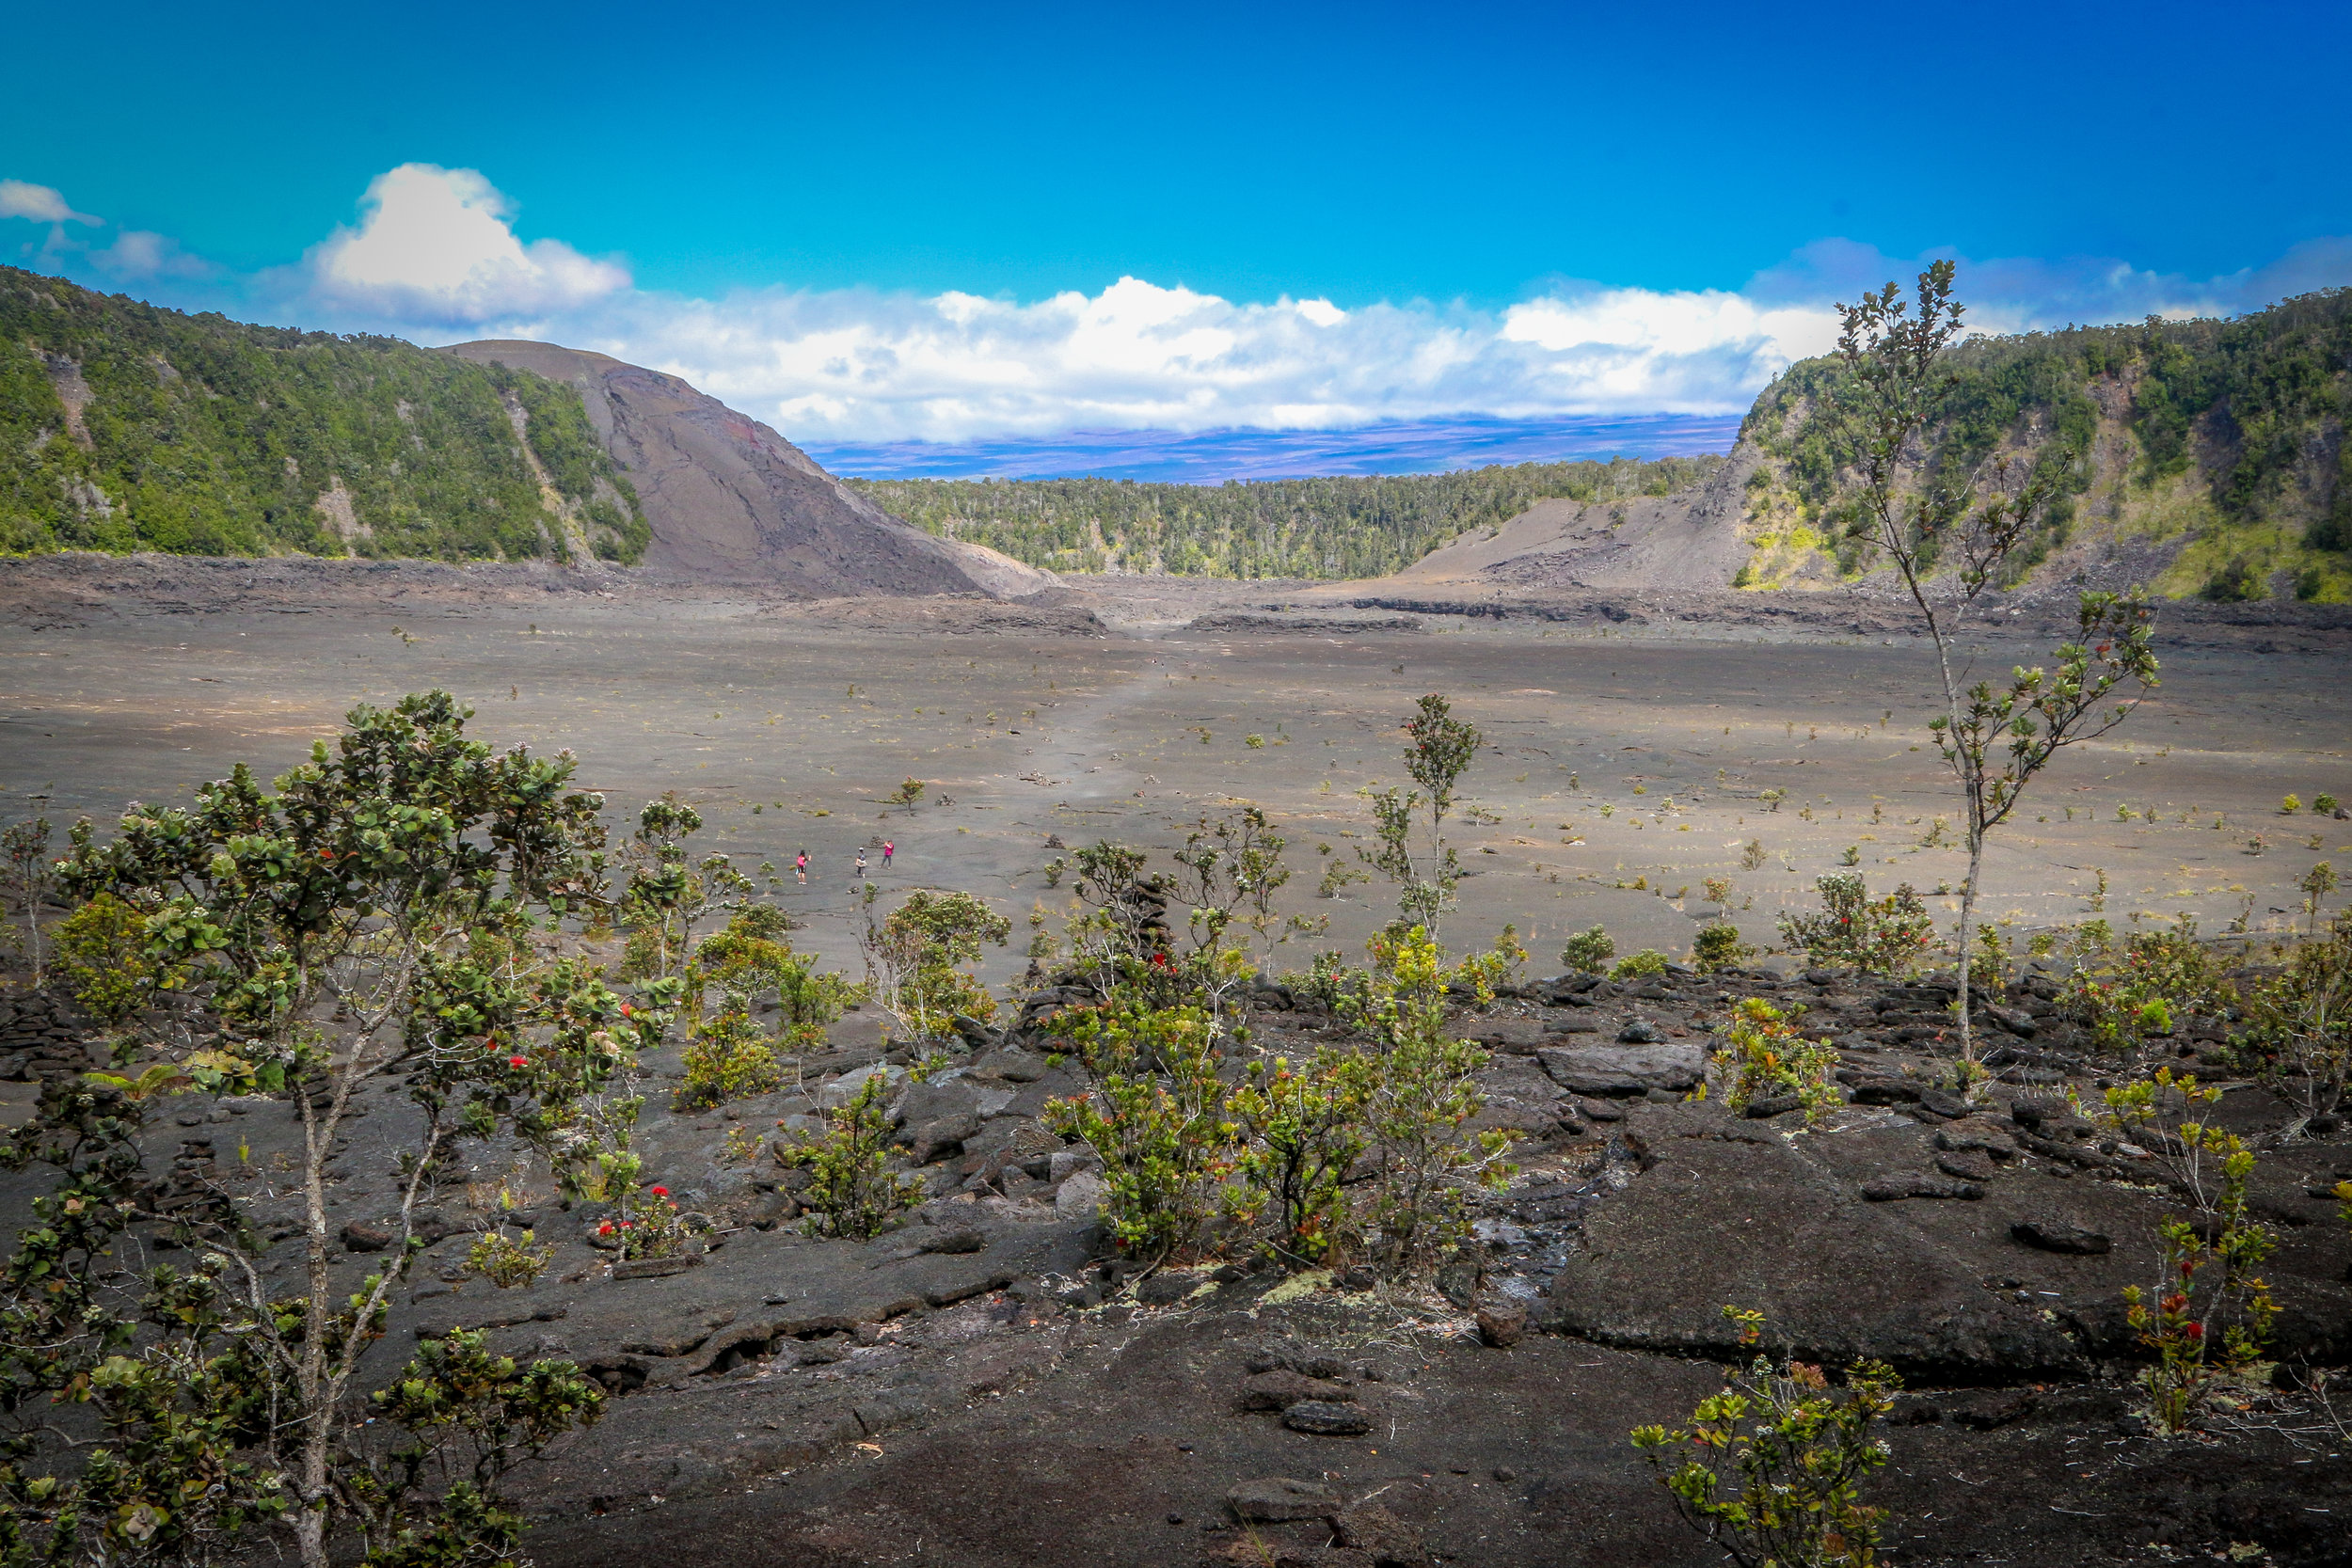 On the Kilauea Iki Trail - Inside the Crater